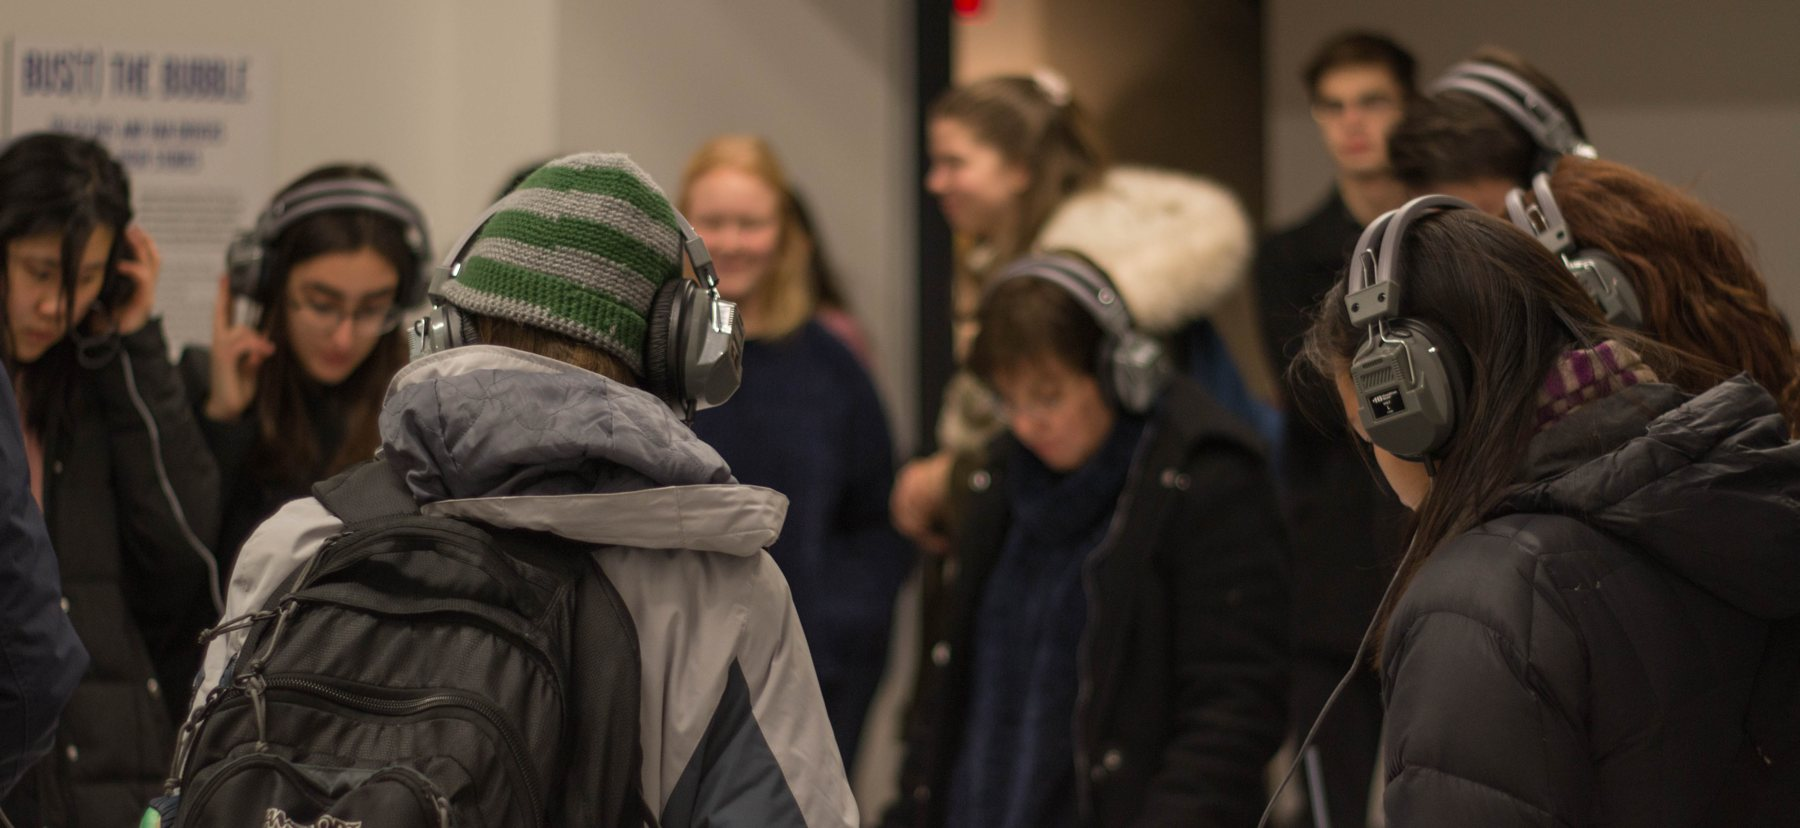 People listening to audio history recordings while wearing headphones